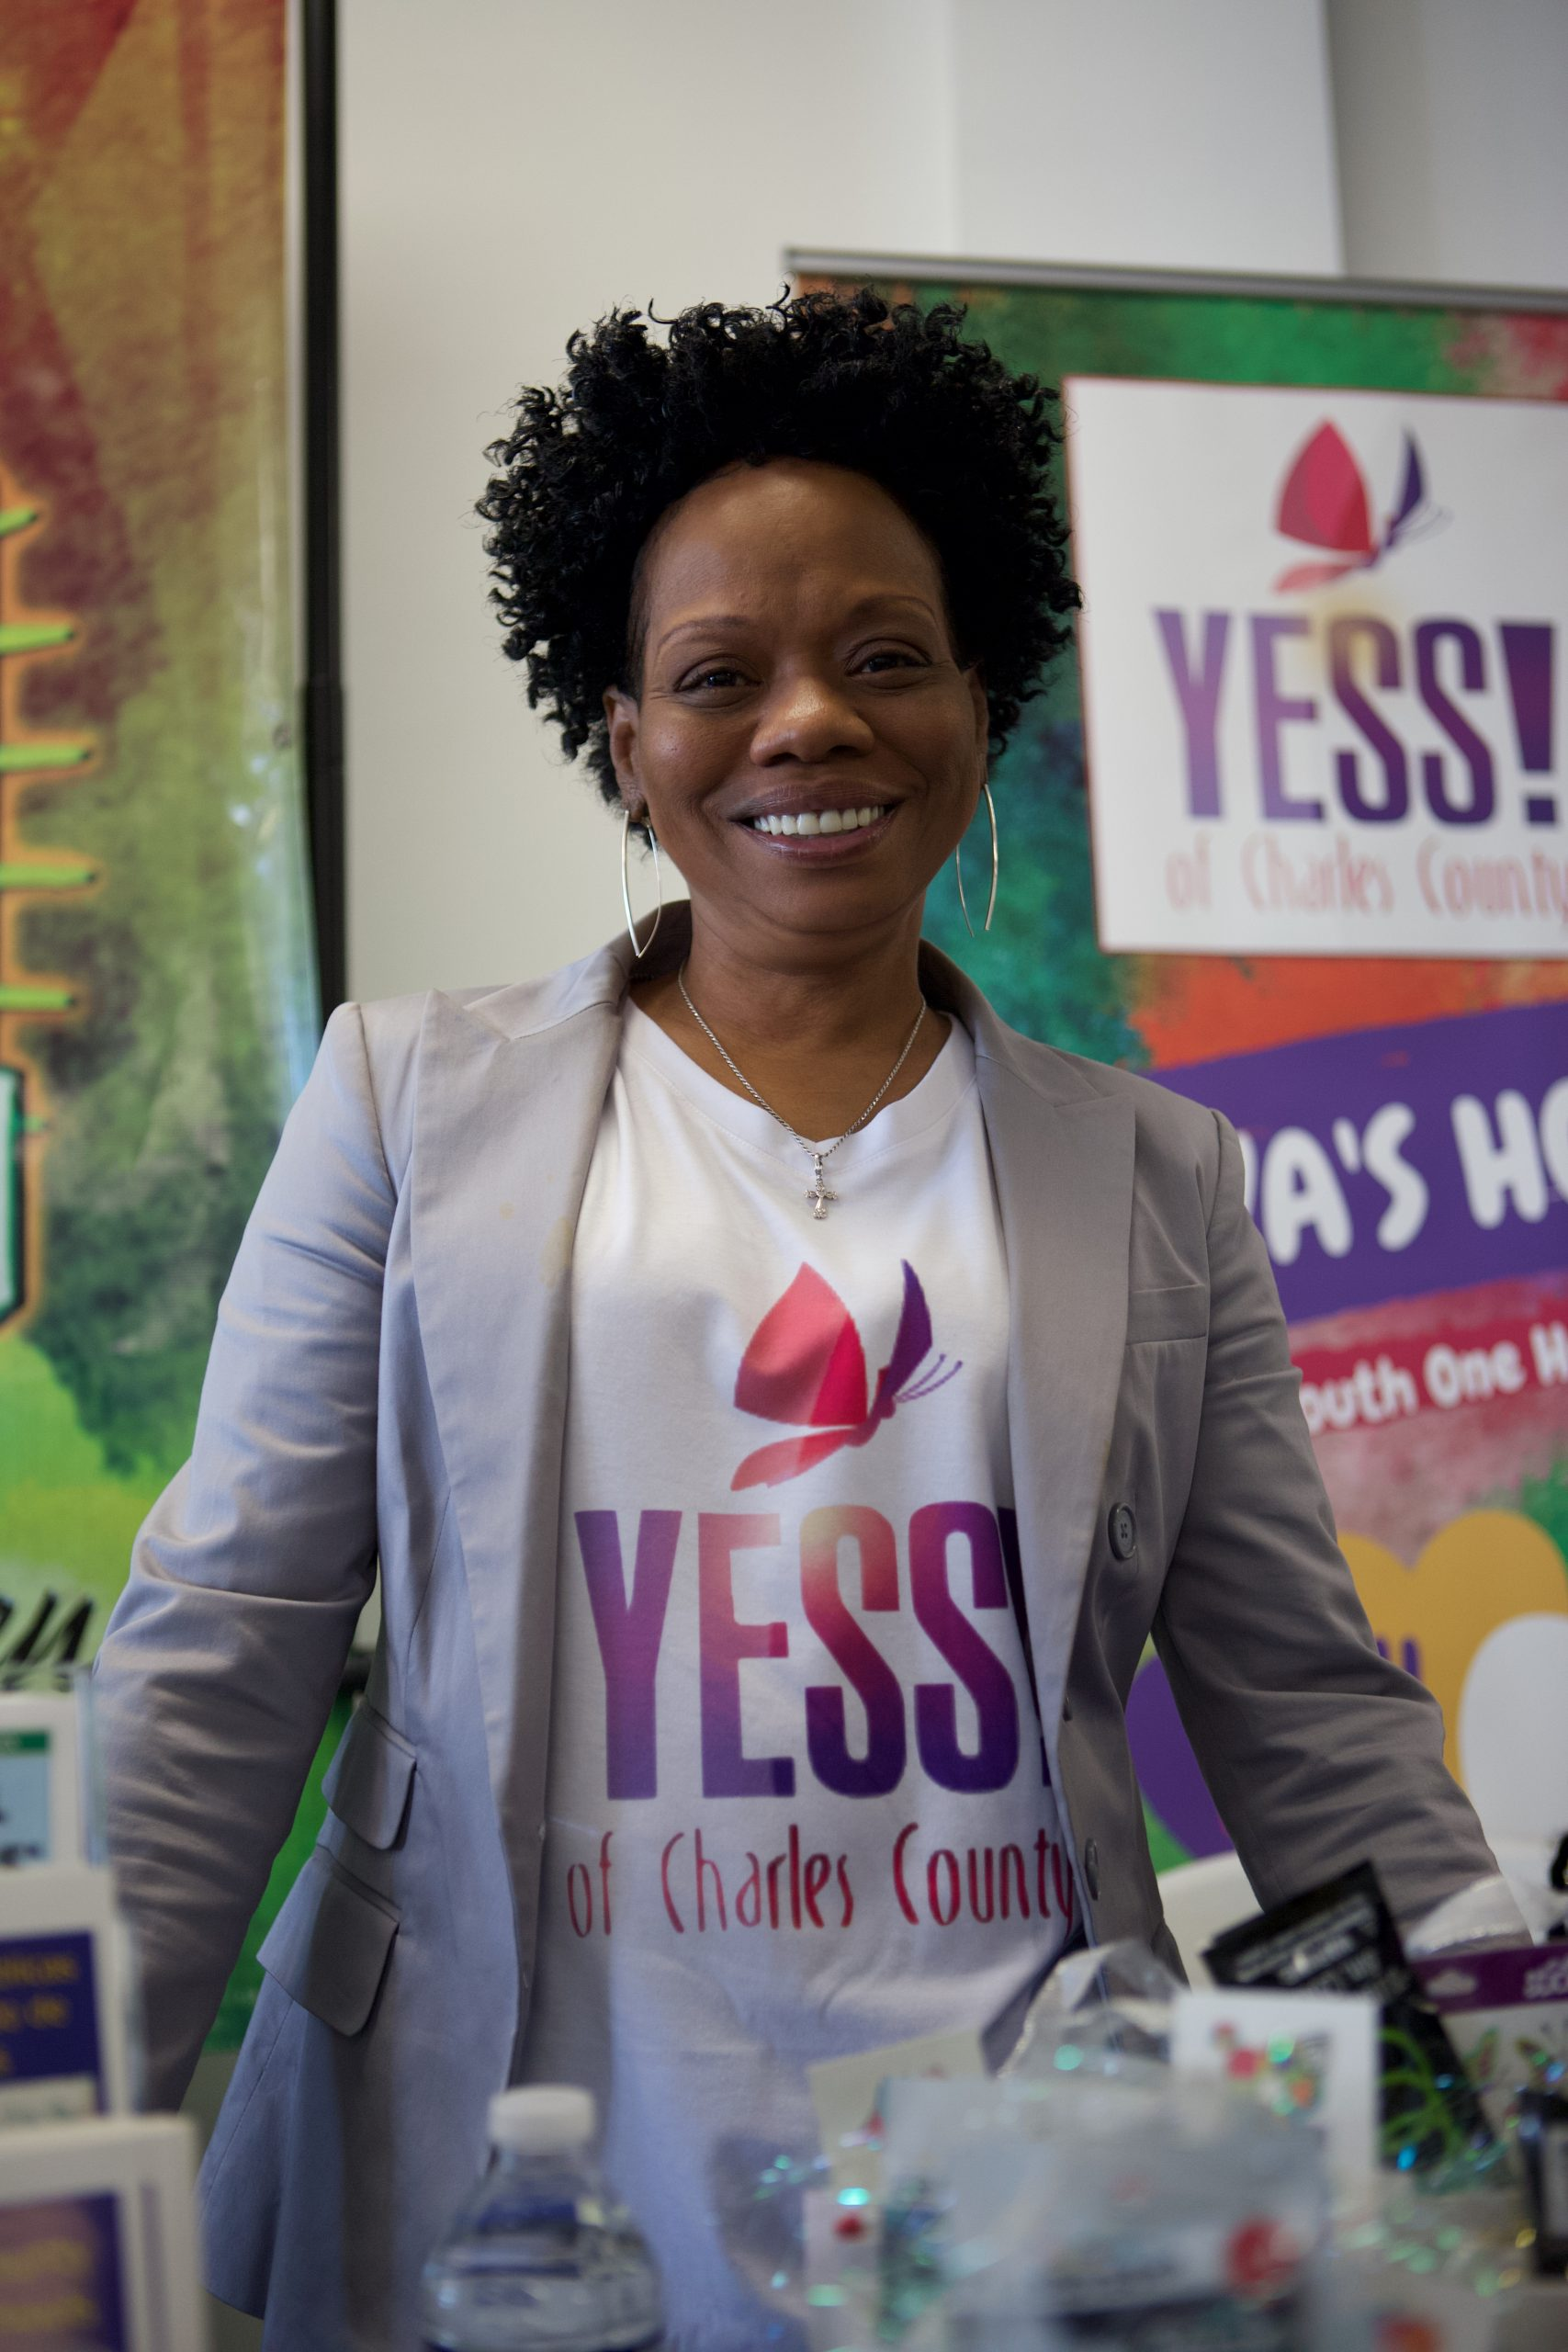 Jacqueline Younger, program coordinator at YESS! of Charles County, who participated in Saturday's community services pop-up in Bryans Road. (Photo by Paul Lagasse)